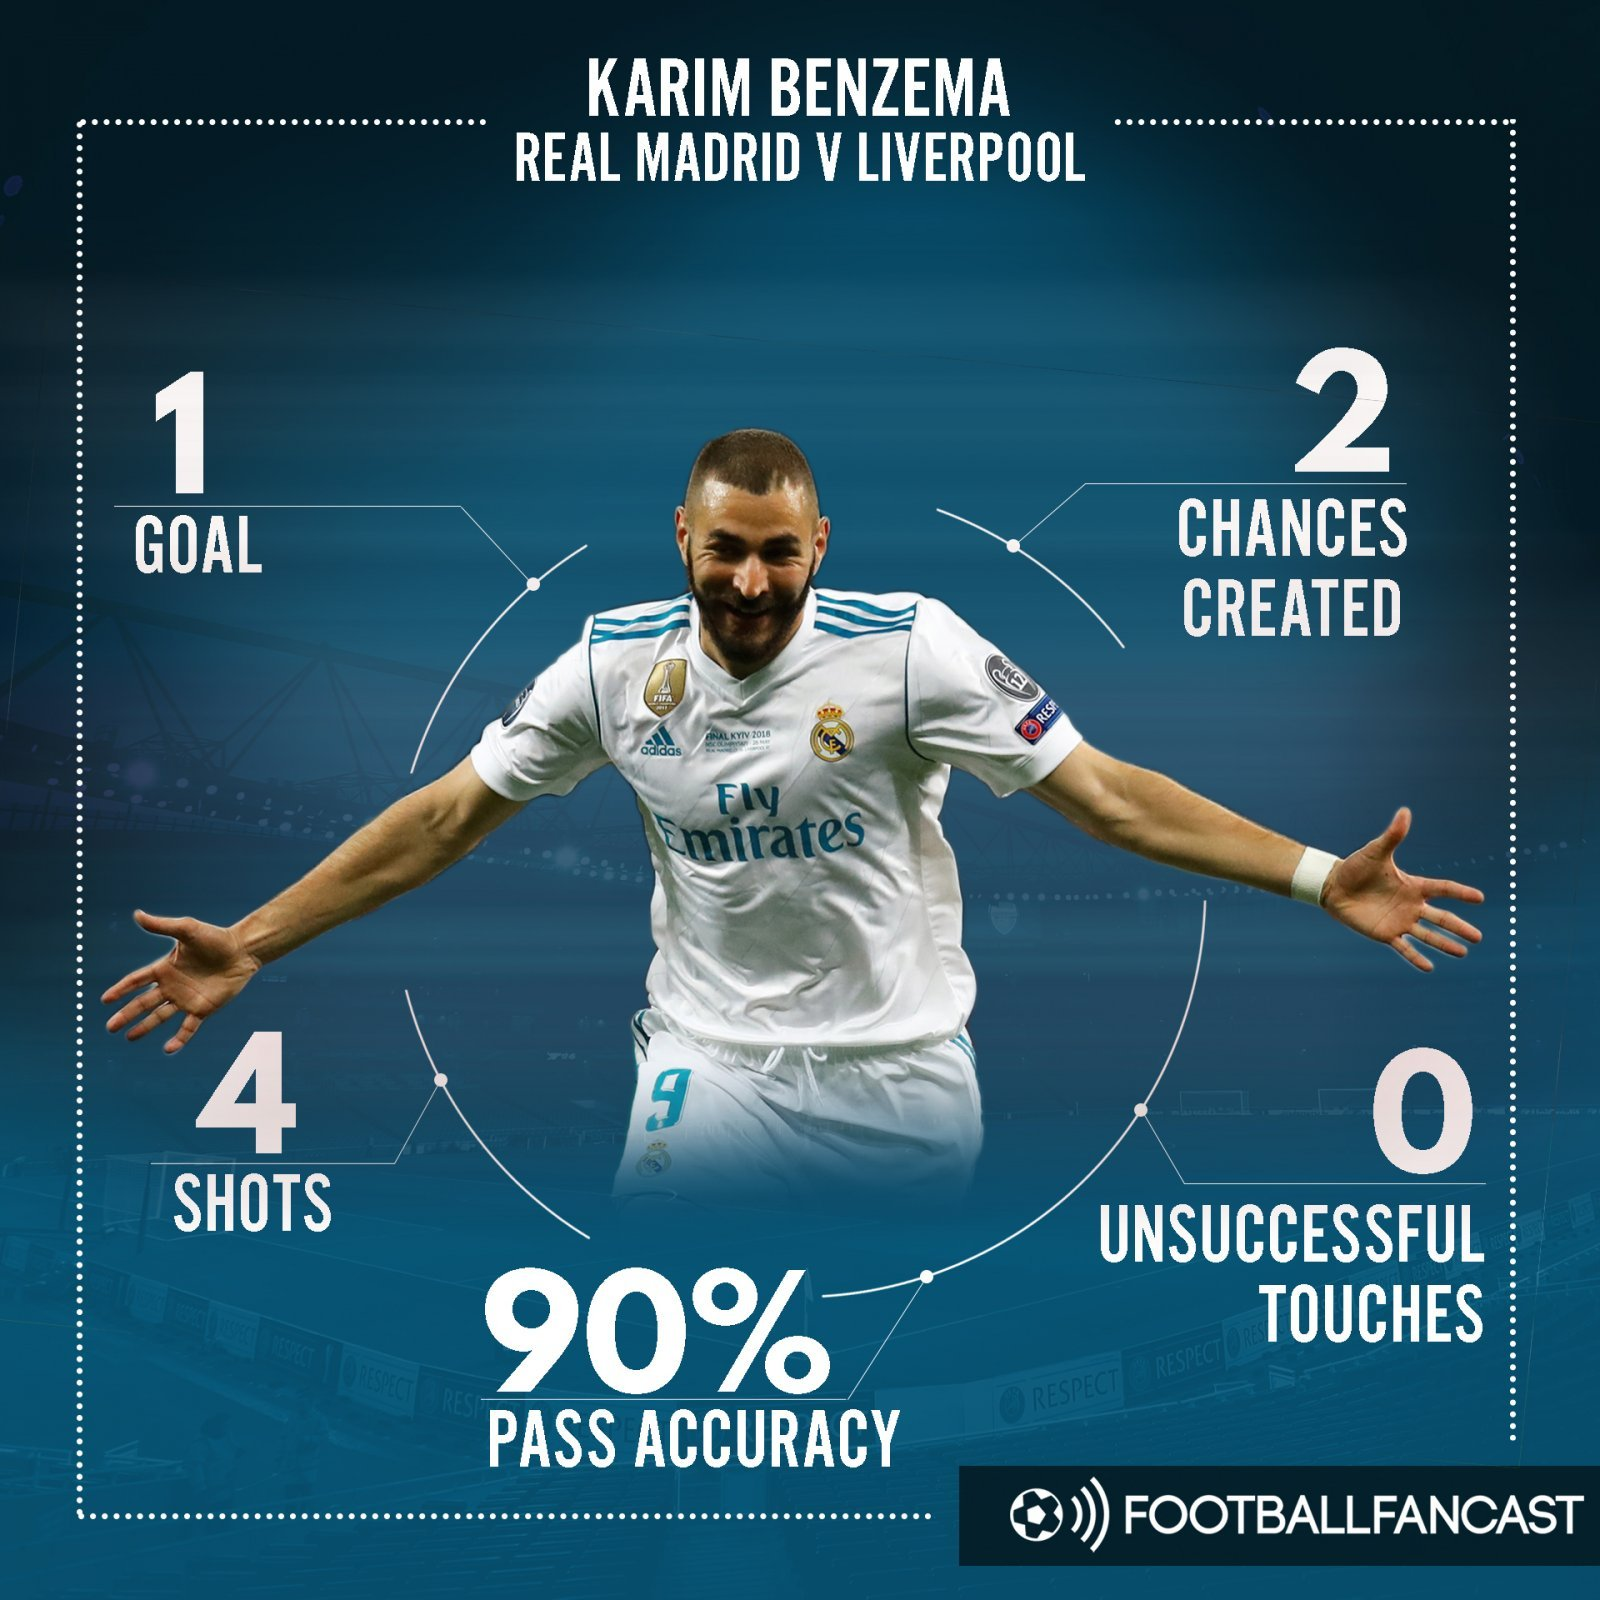 Karim Benzema's stats from Champions League final